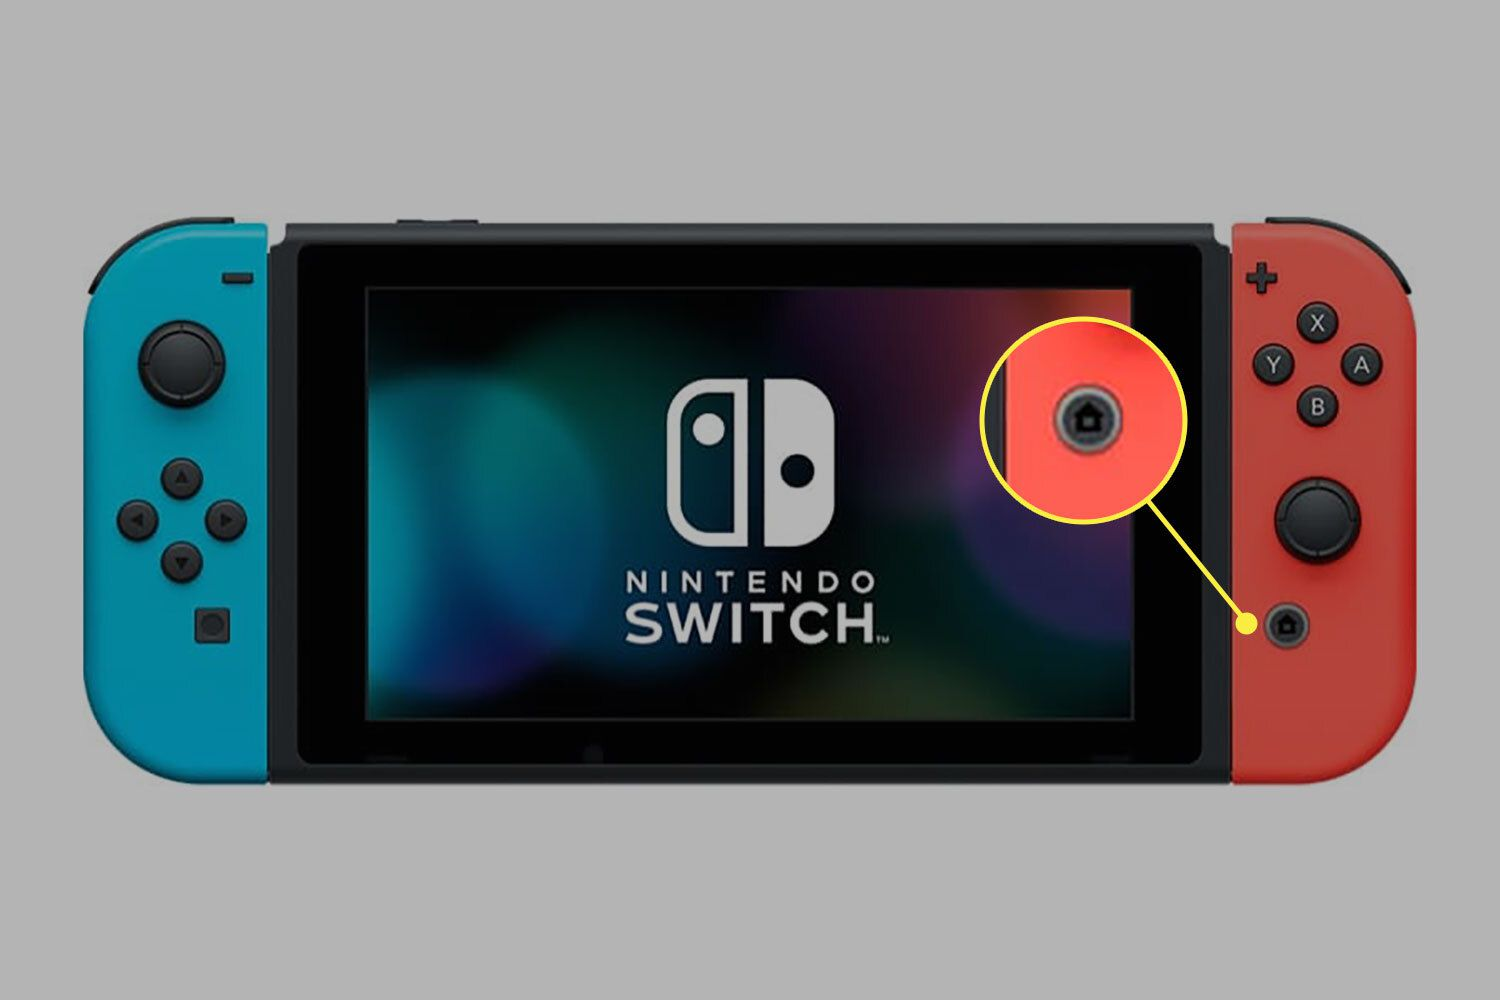 Nintendo Switch with home button highlighted.